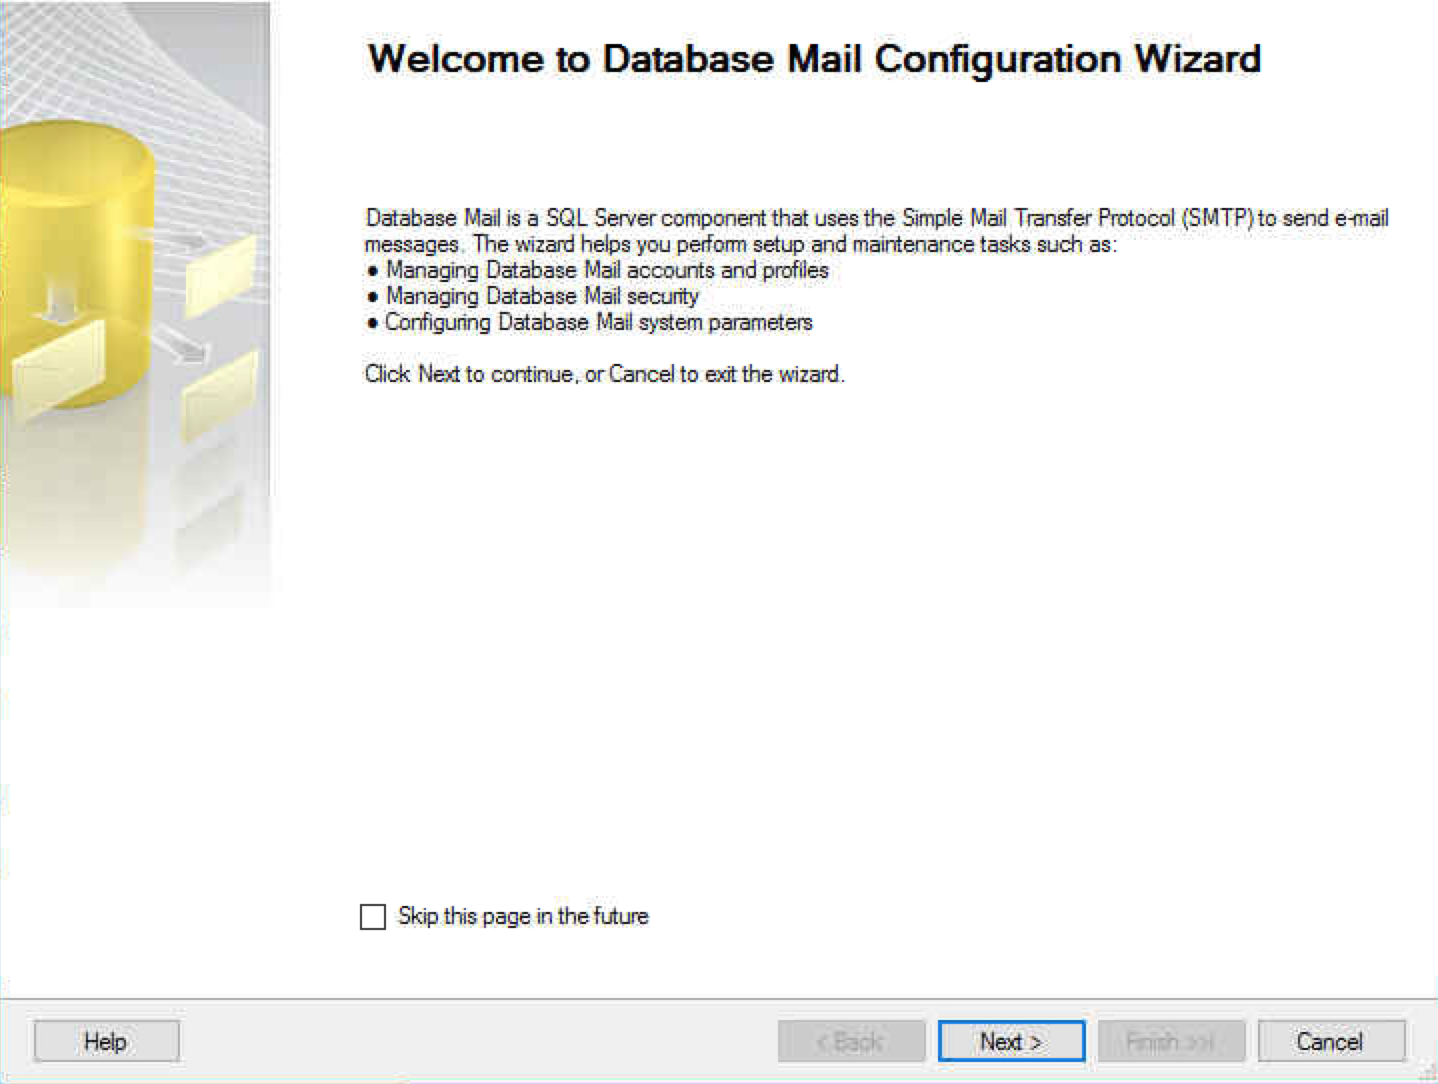 Start the Database Mail Configuration Wizard